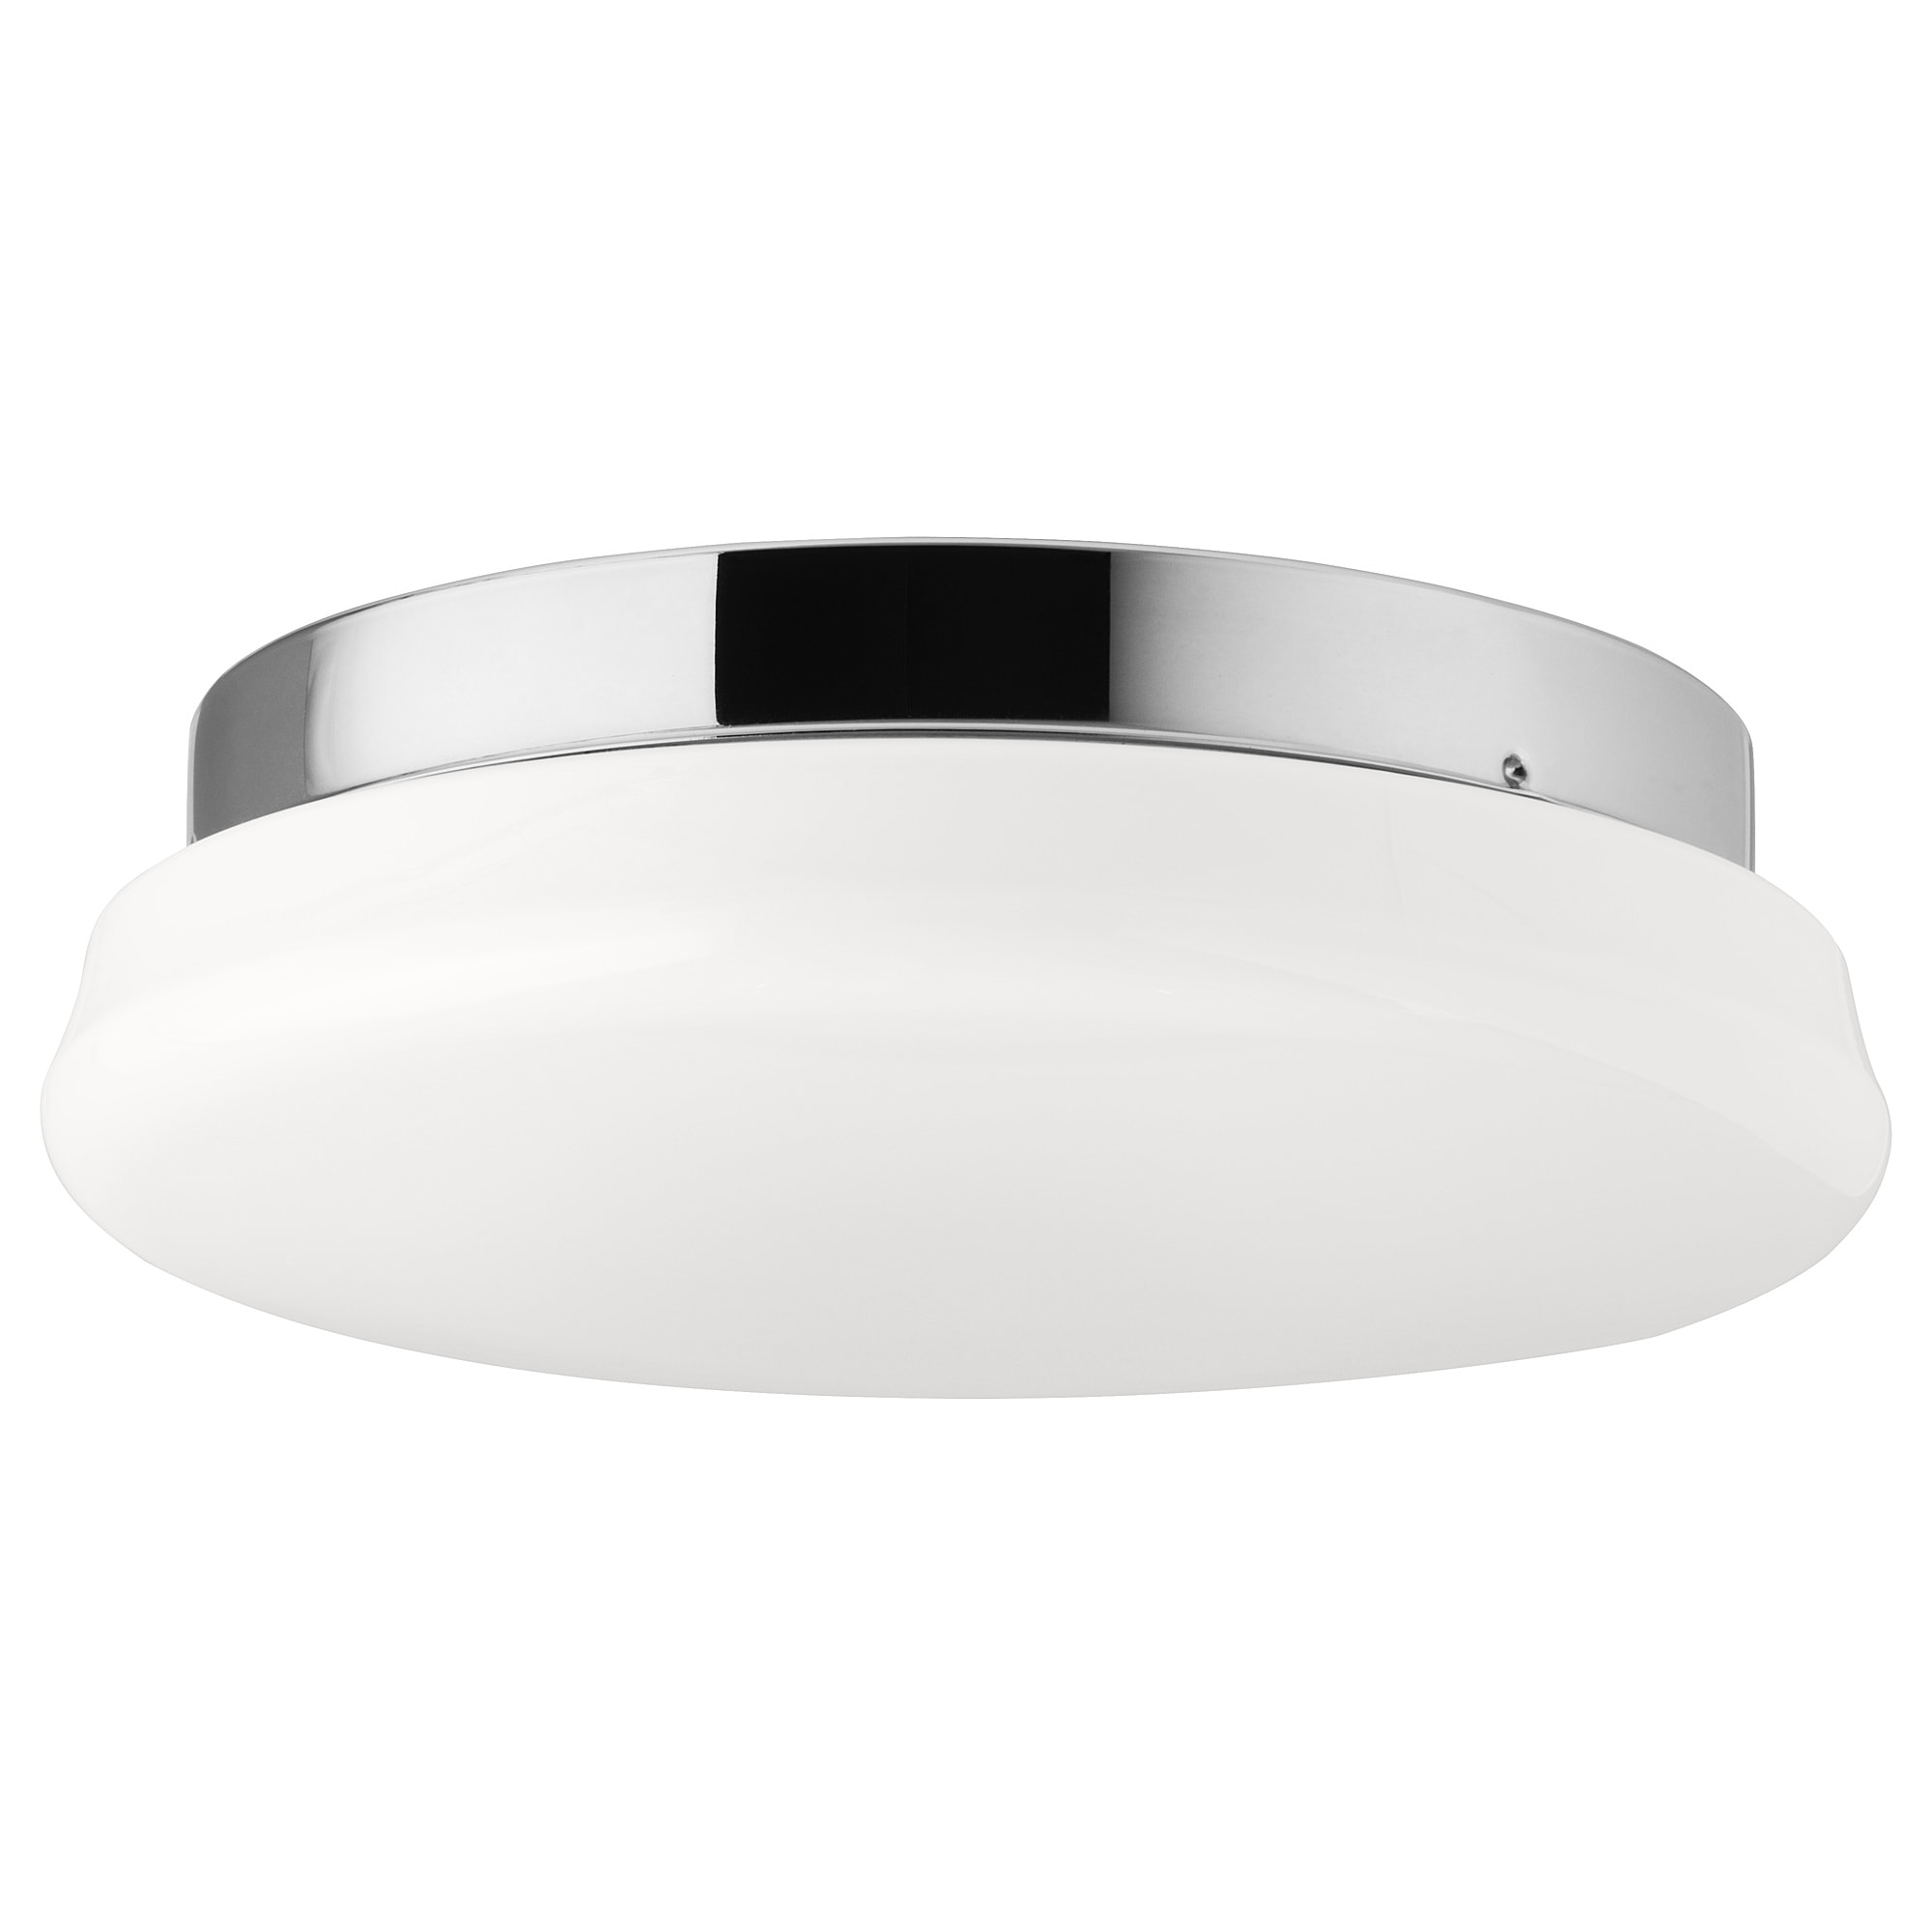 ikea lighting fixtures ceiling lamp shades inter ikea systems bv 1999 2018 privacy policy responsible disclosure gsgrund ceiling lamp 16